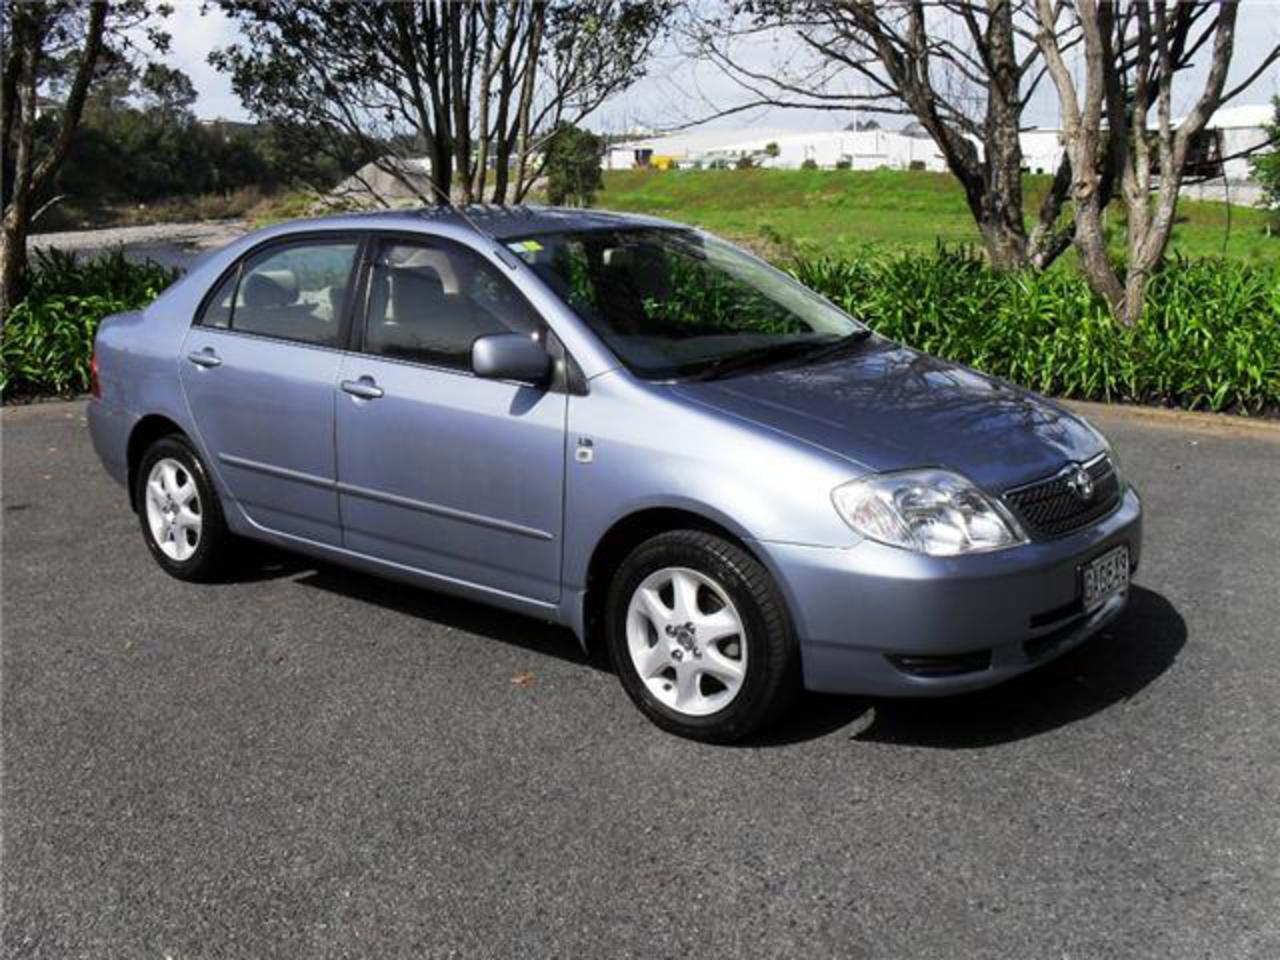 Suzuki Aerio 16 GLX Sedan - cars catalog, specs, features, photos, videos,